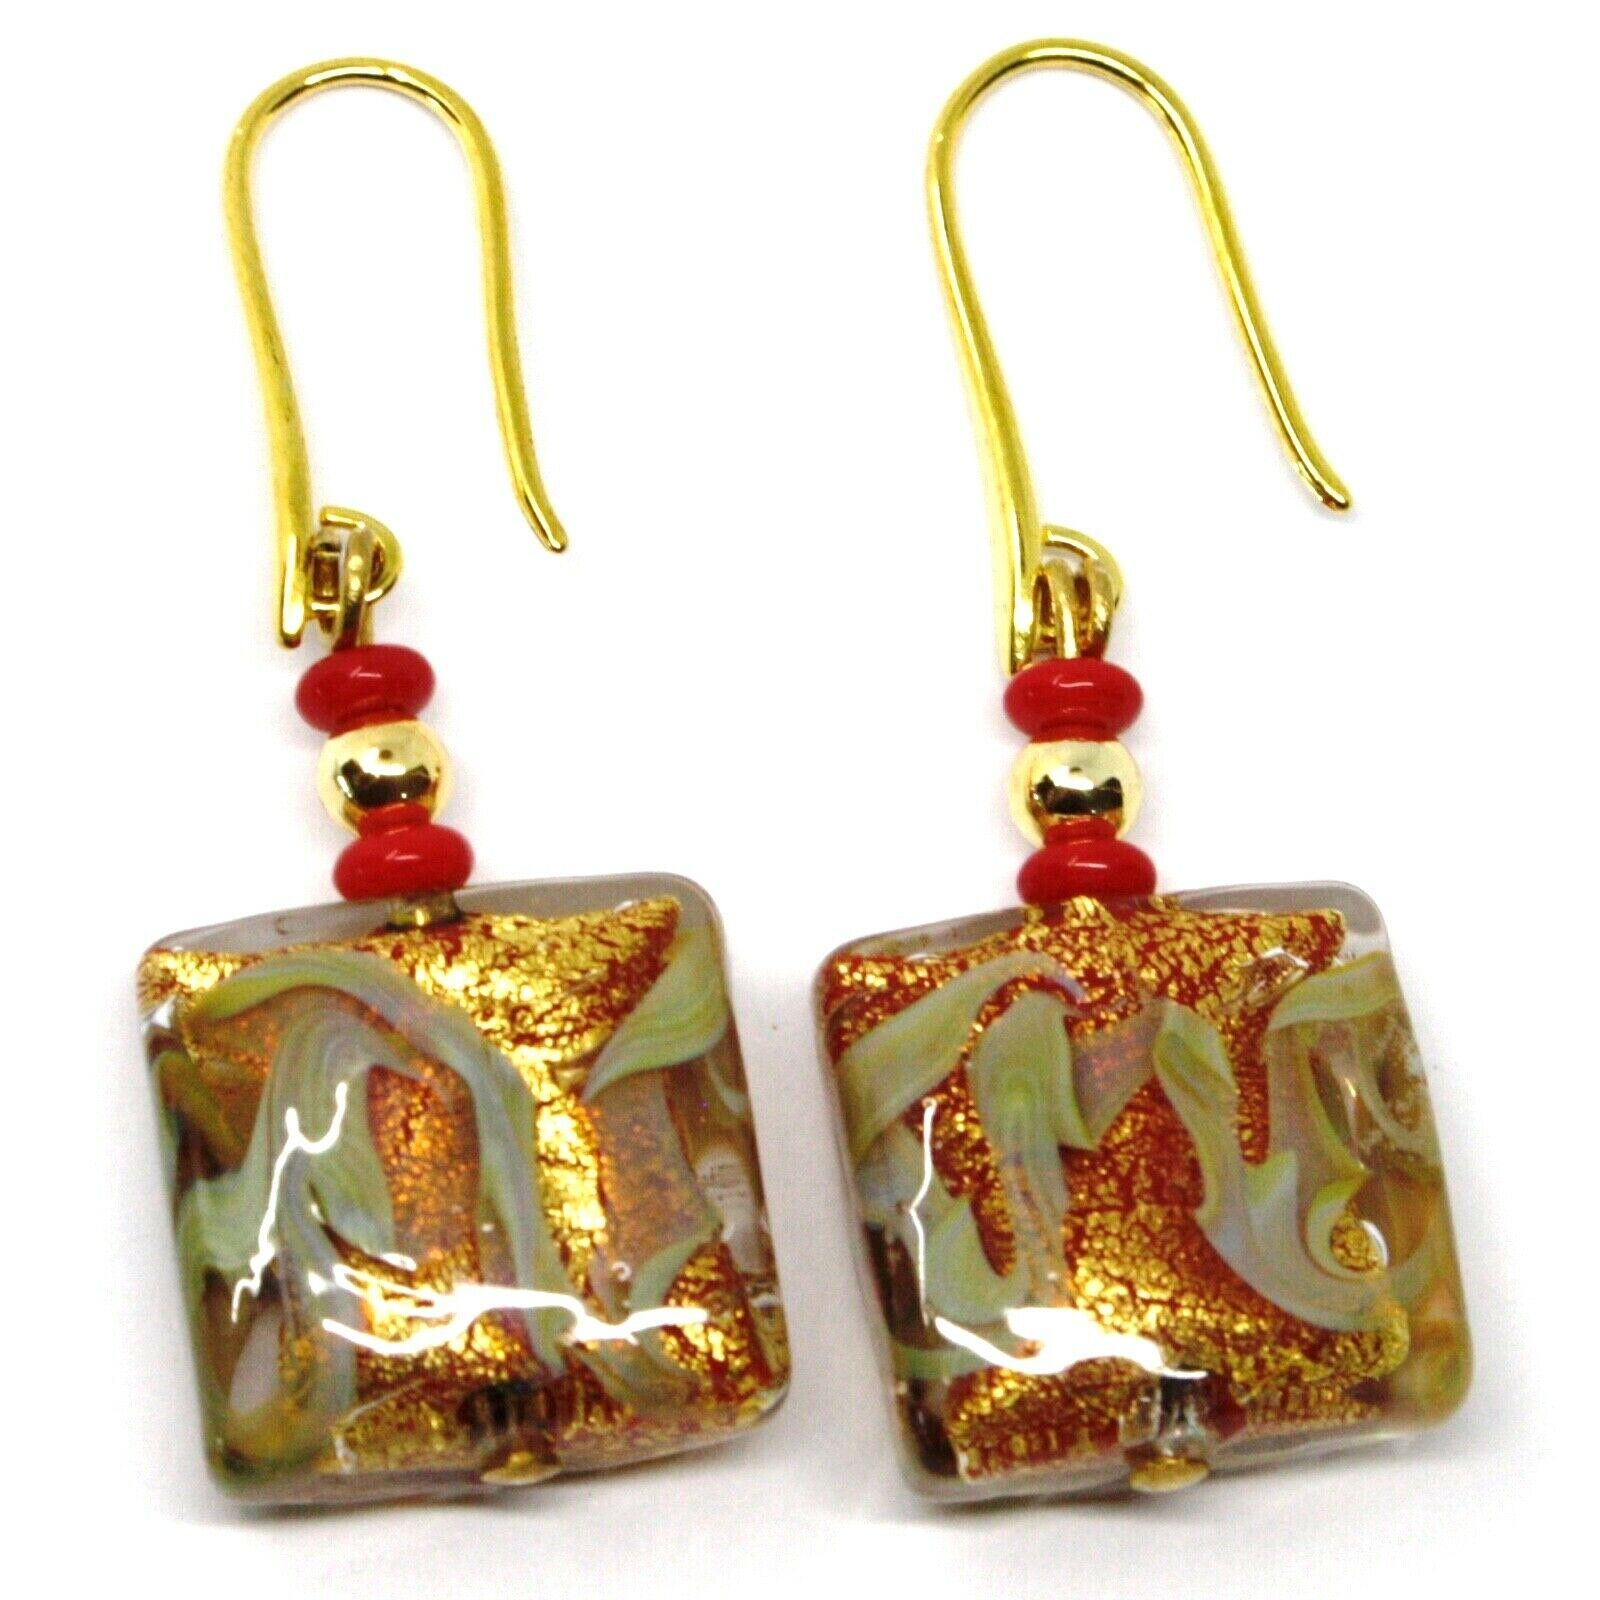 PENDANT EARRINGS WITH RED MURANO SQUARE GLASS & GOLD LEAF, MADE IN ITALY